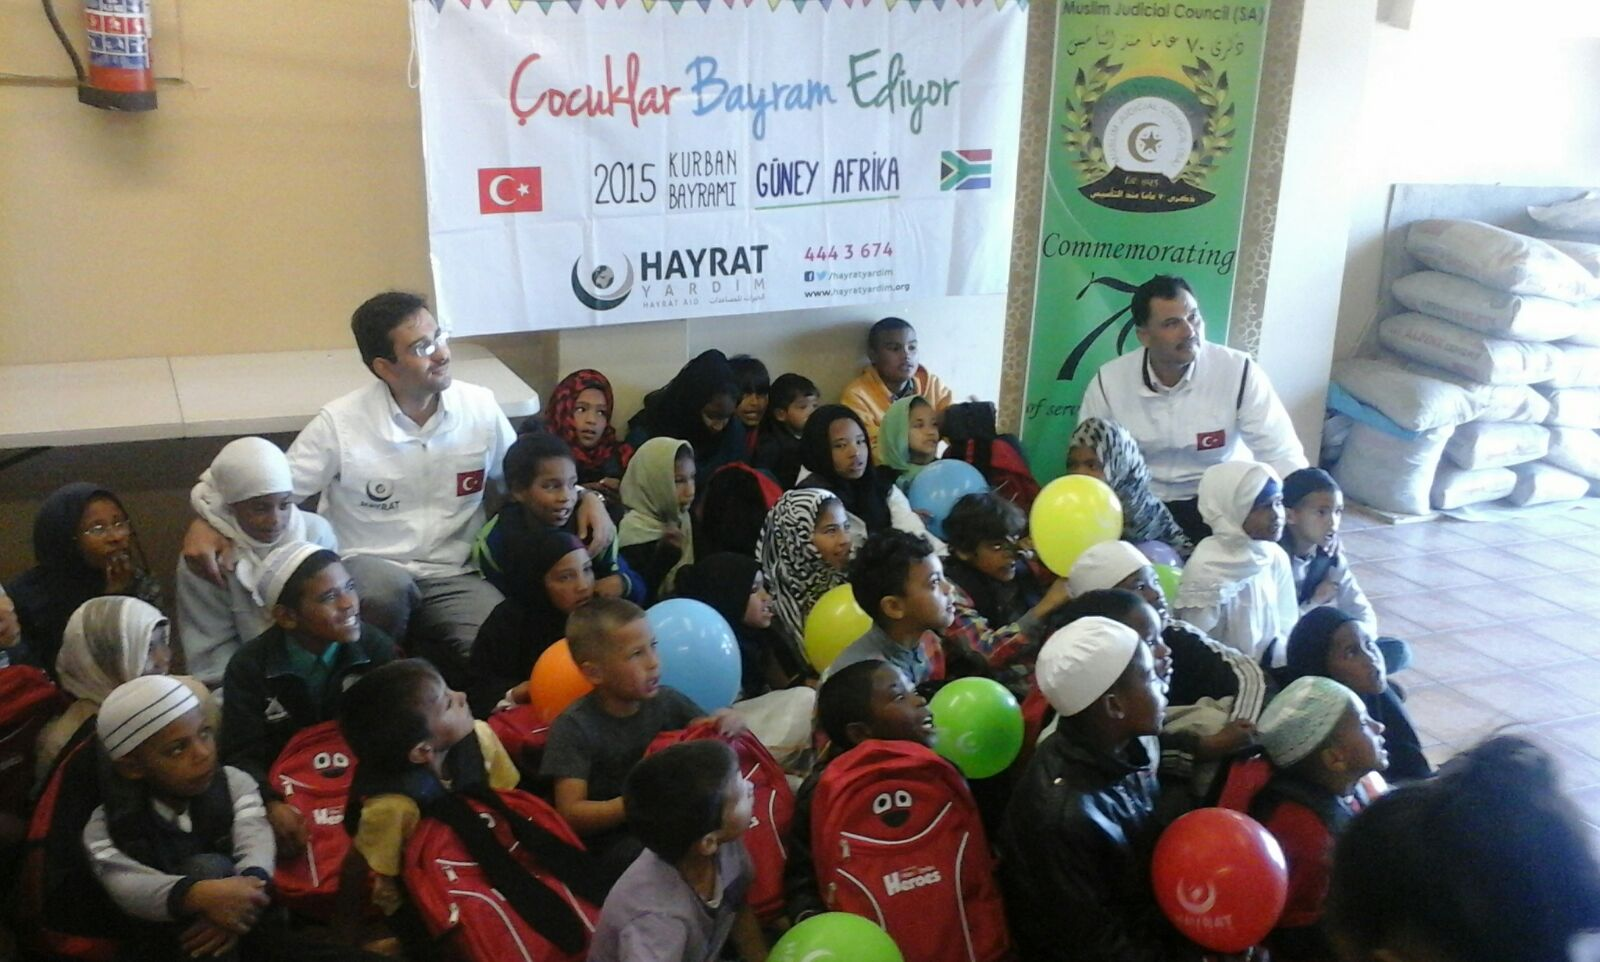 MJC (SA), Hayrat Foundation and Turkish Airlines Eidul Adha Orphan Project 2015  - adf52d26556baf718e4c6bb09f8a54a6 - MJC-Hayrat Foundation and Turkish Airlines Eidul Adha Orphan Project 2015